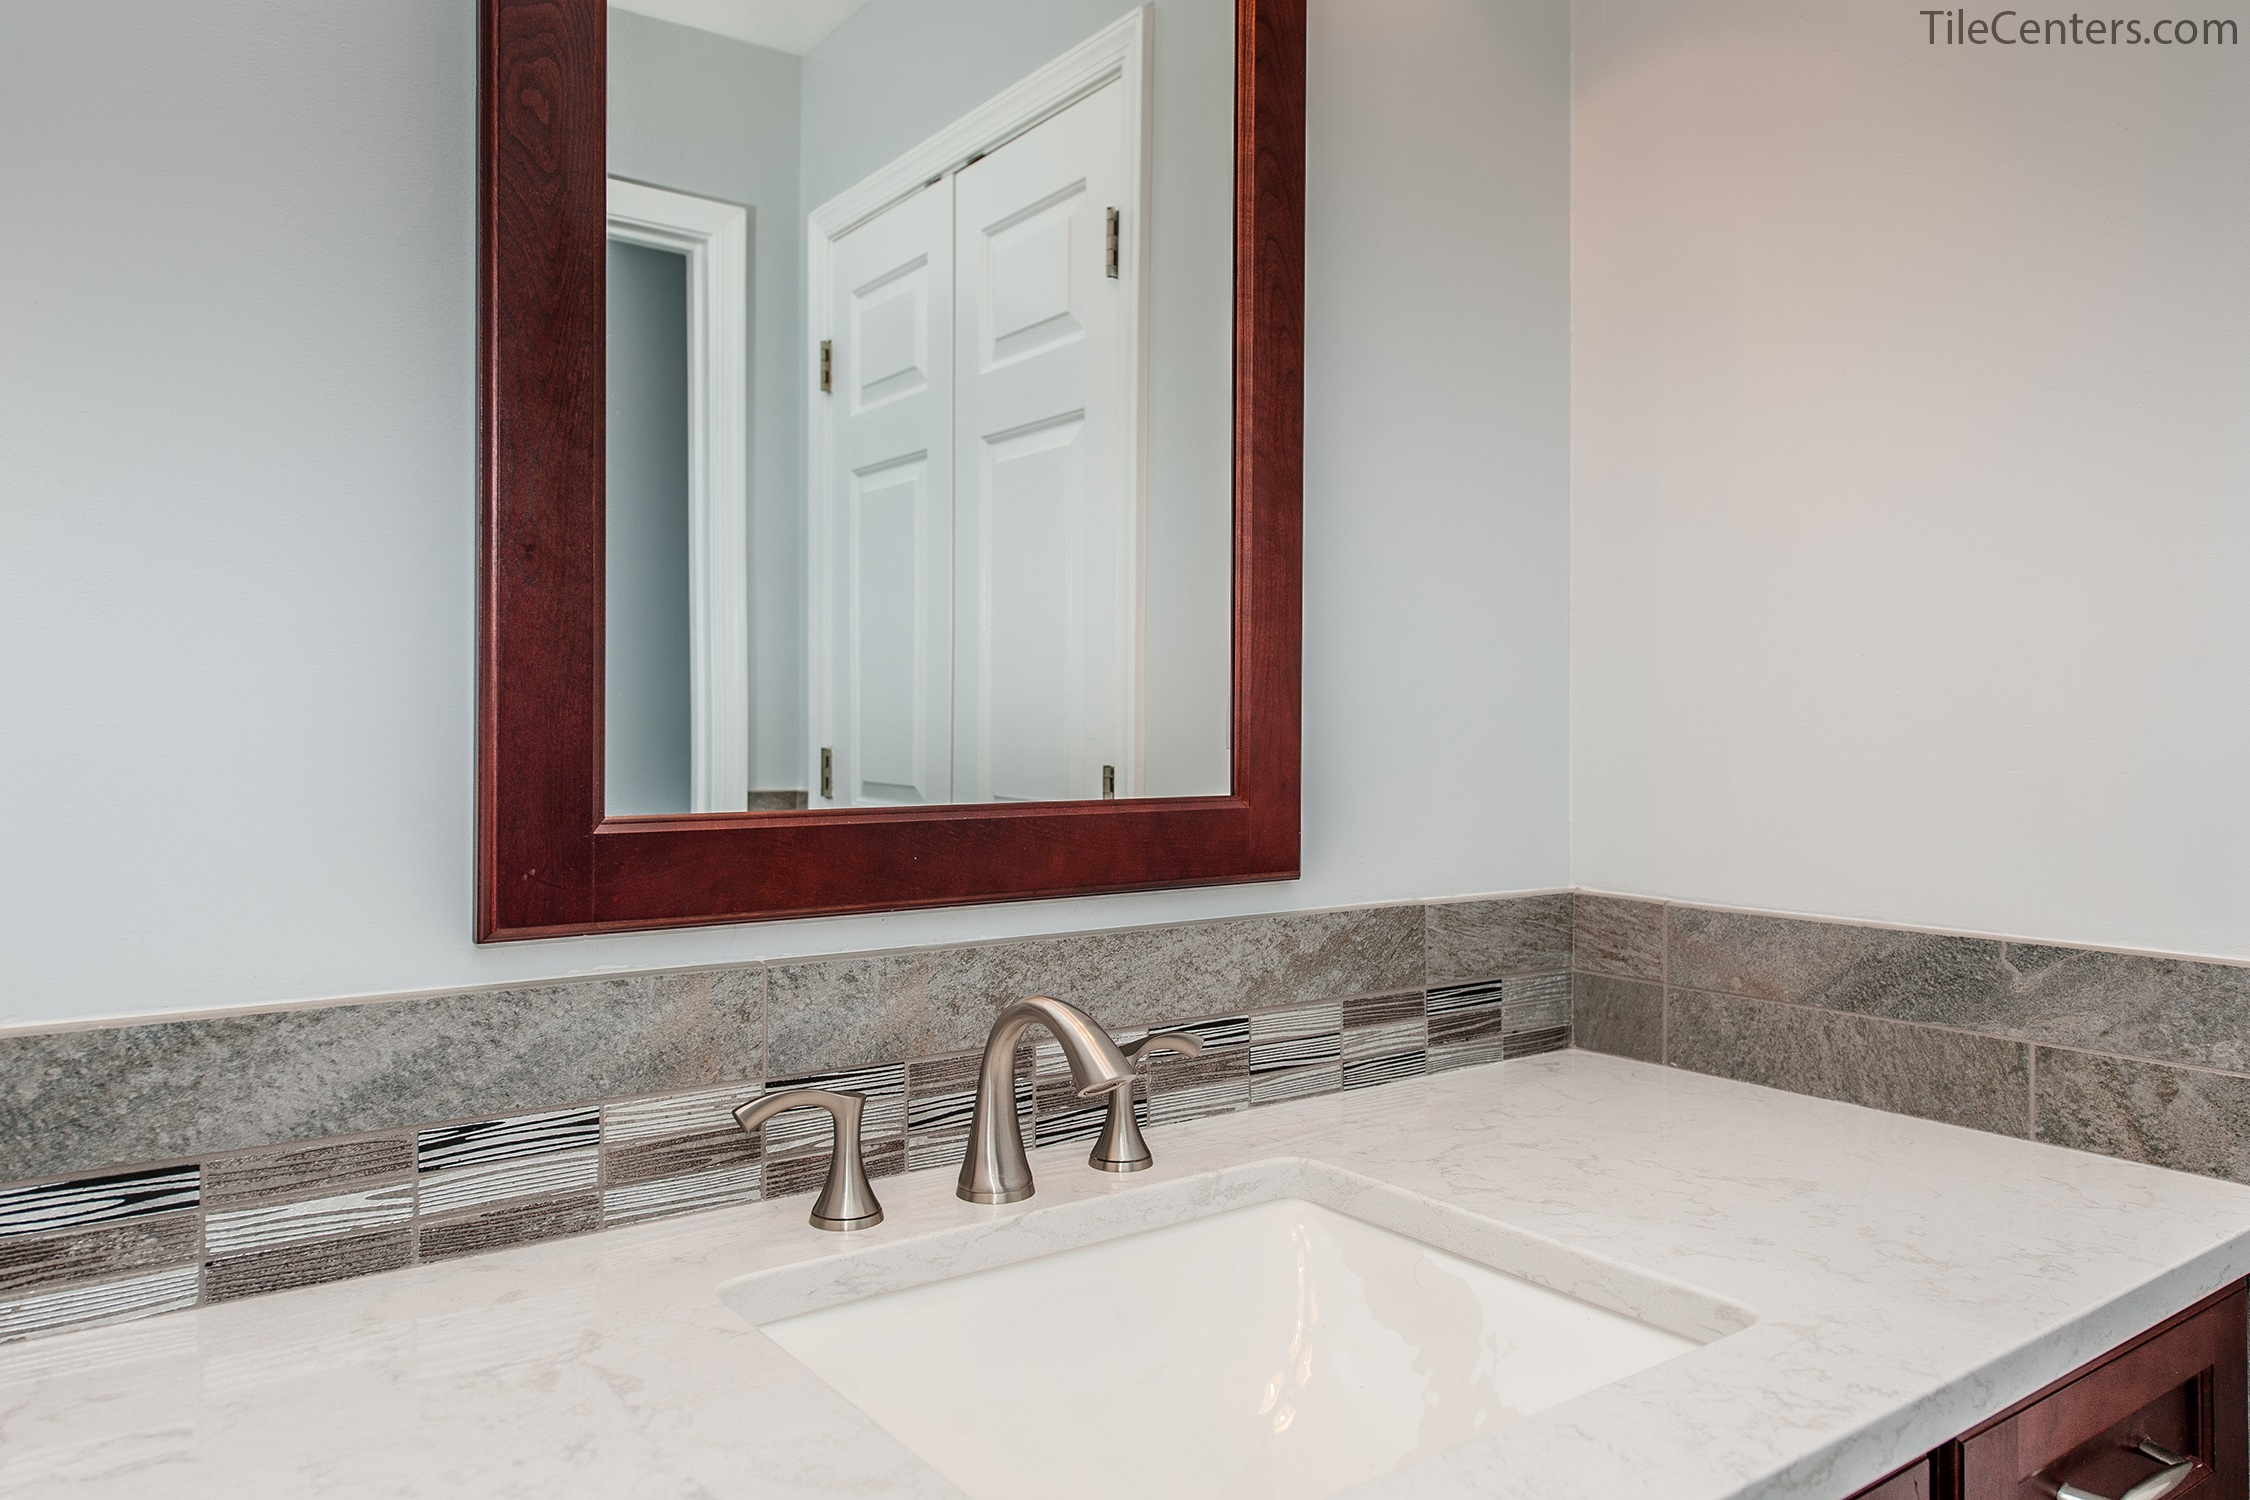 Bathroom - Downland Terrace, Olney, MD 20832: Tile Center ...